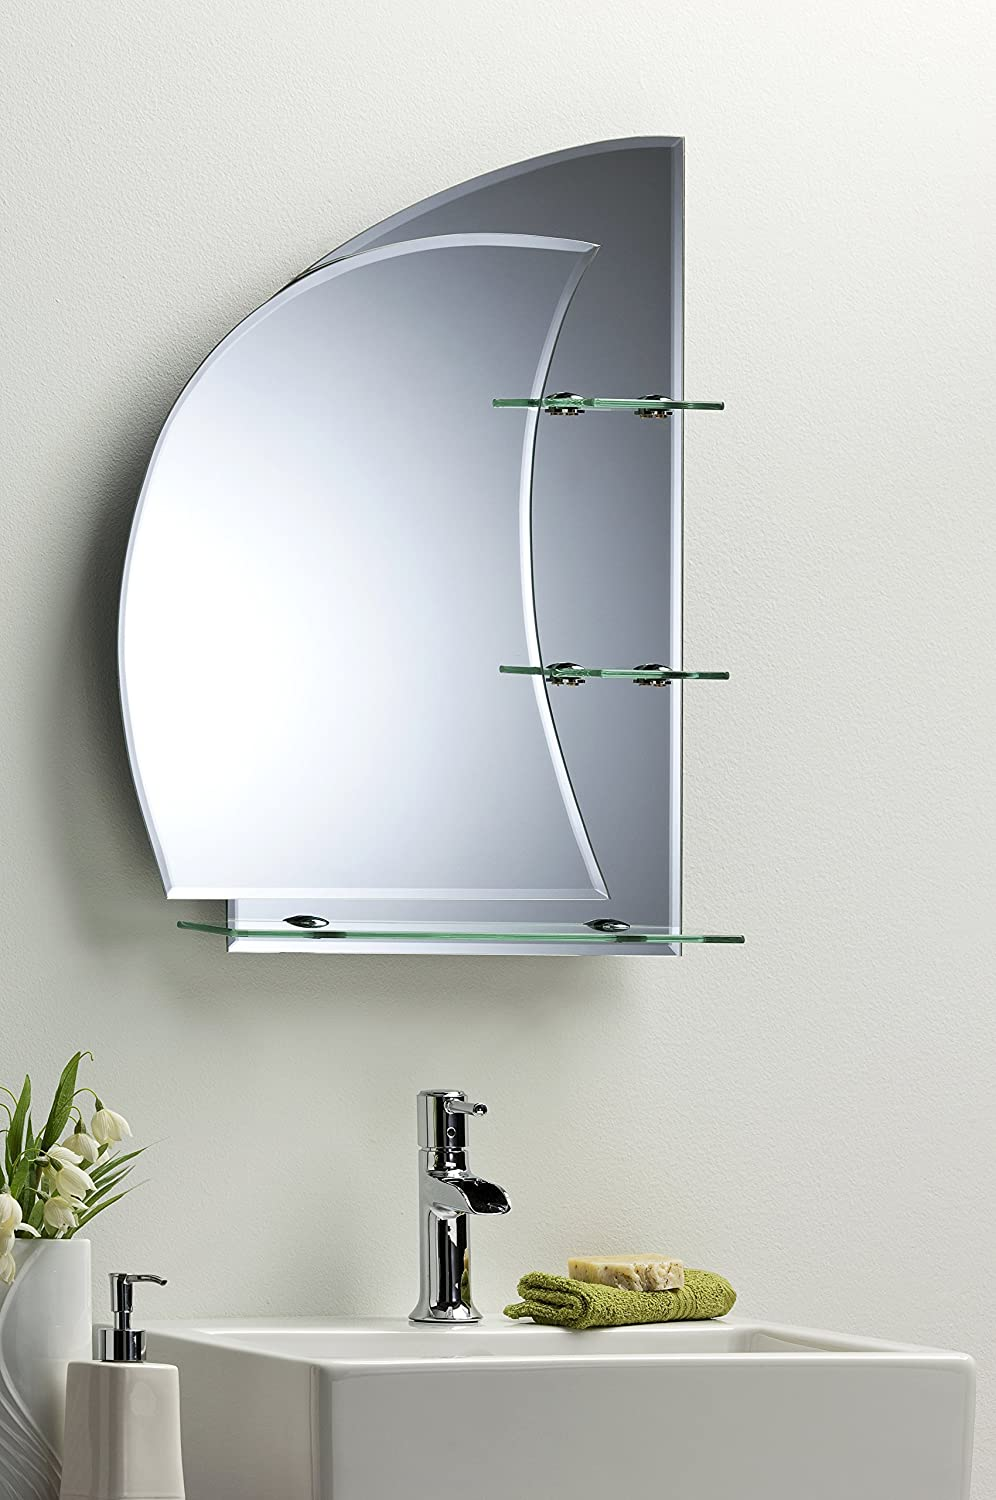 Bathroom mirror with shelves stunning nautical design 70cm x 50cm plain wall mounted amazon co uk kitchen home